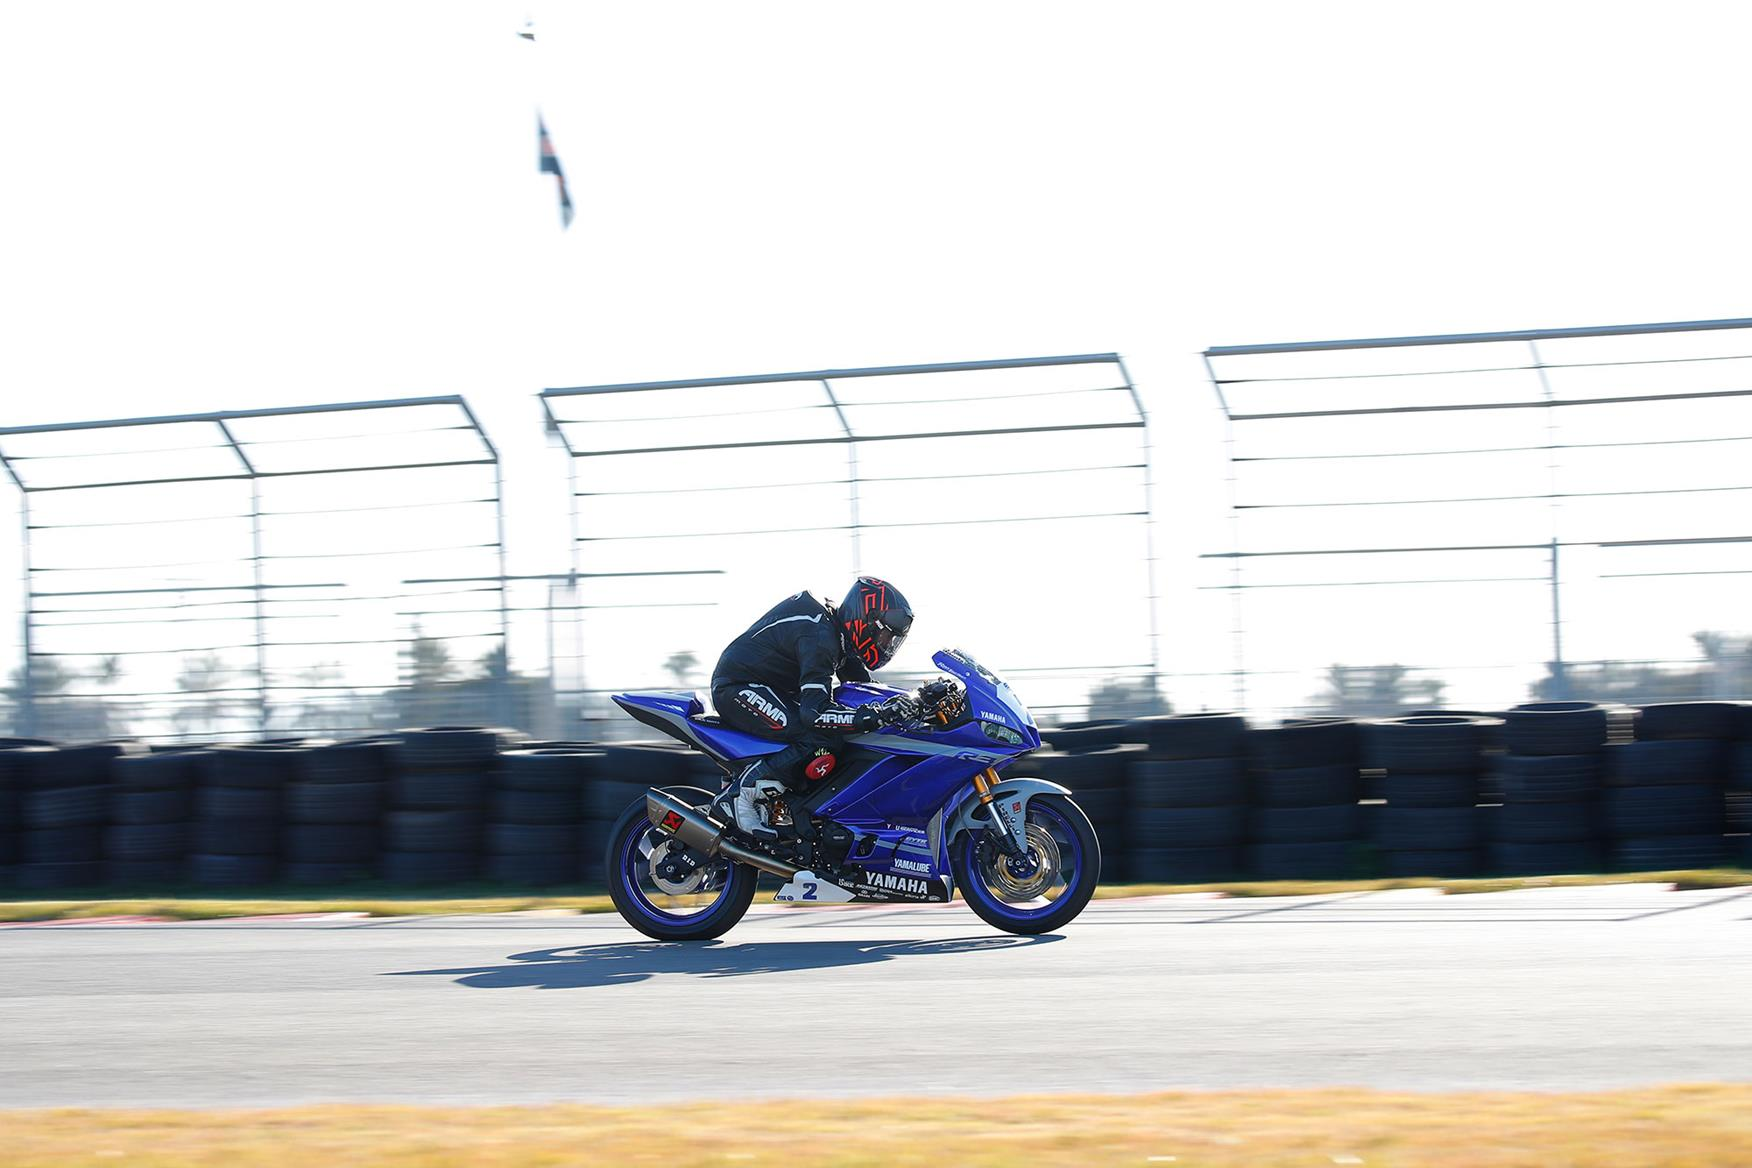 The race bike is faster than the standard R3